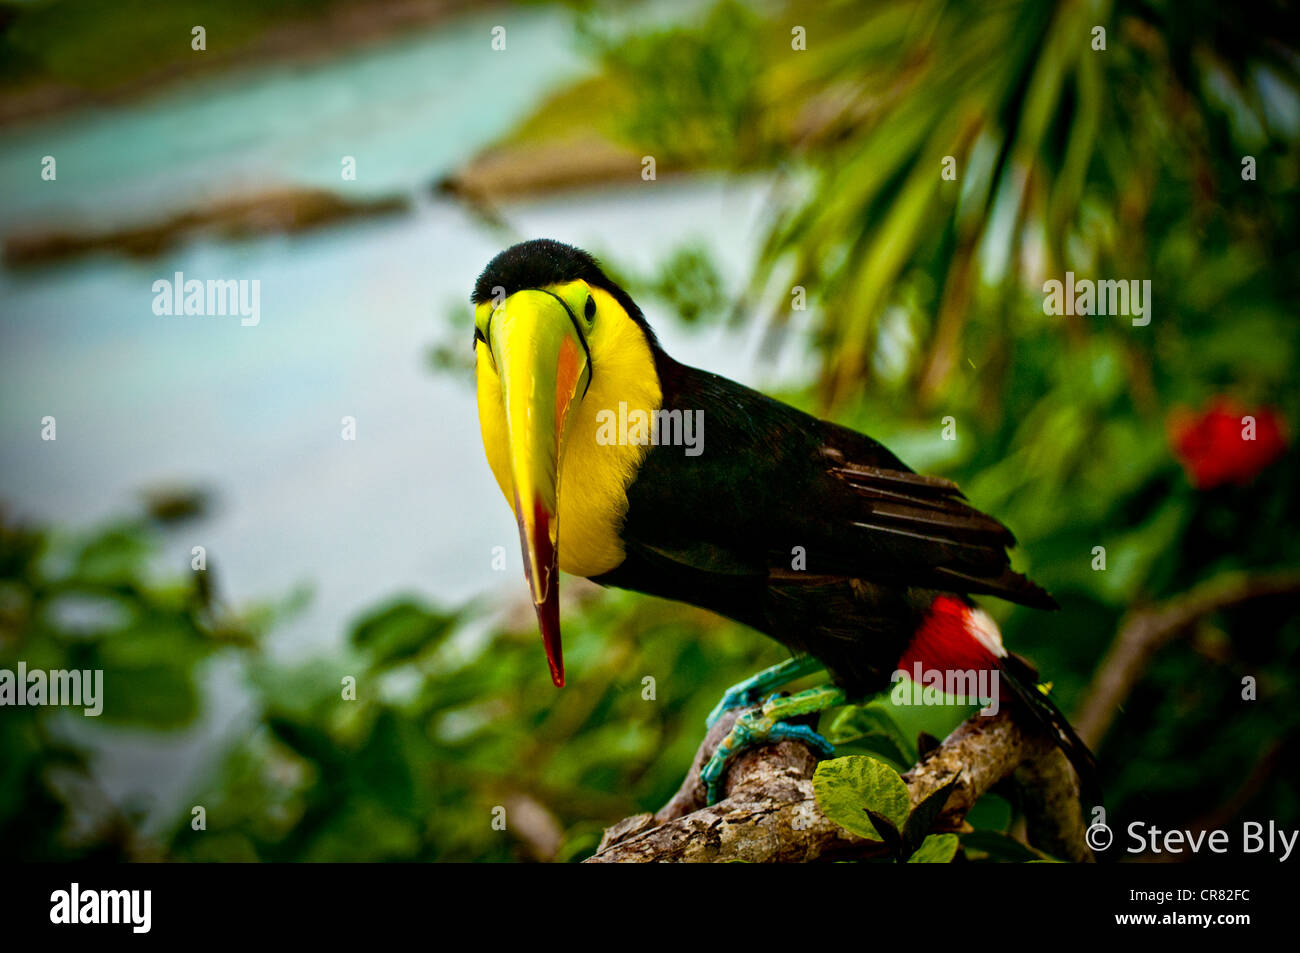 The Keel-Billed Toucan is a majestic site in the tropical forest of the riviera maya, Yucatan Penisula,Quintana - Stock Image